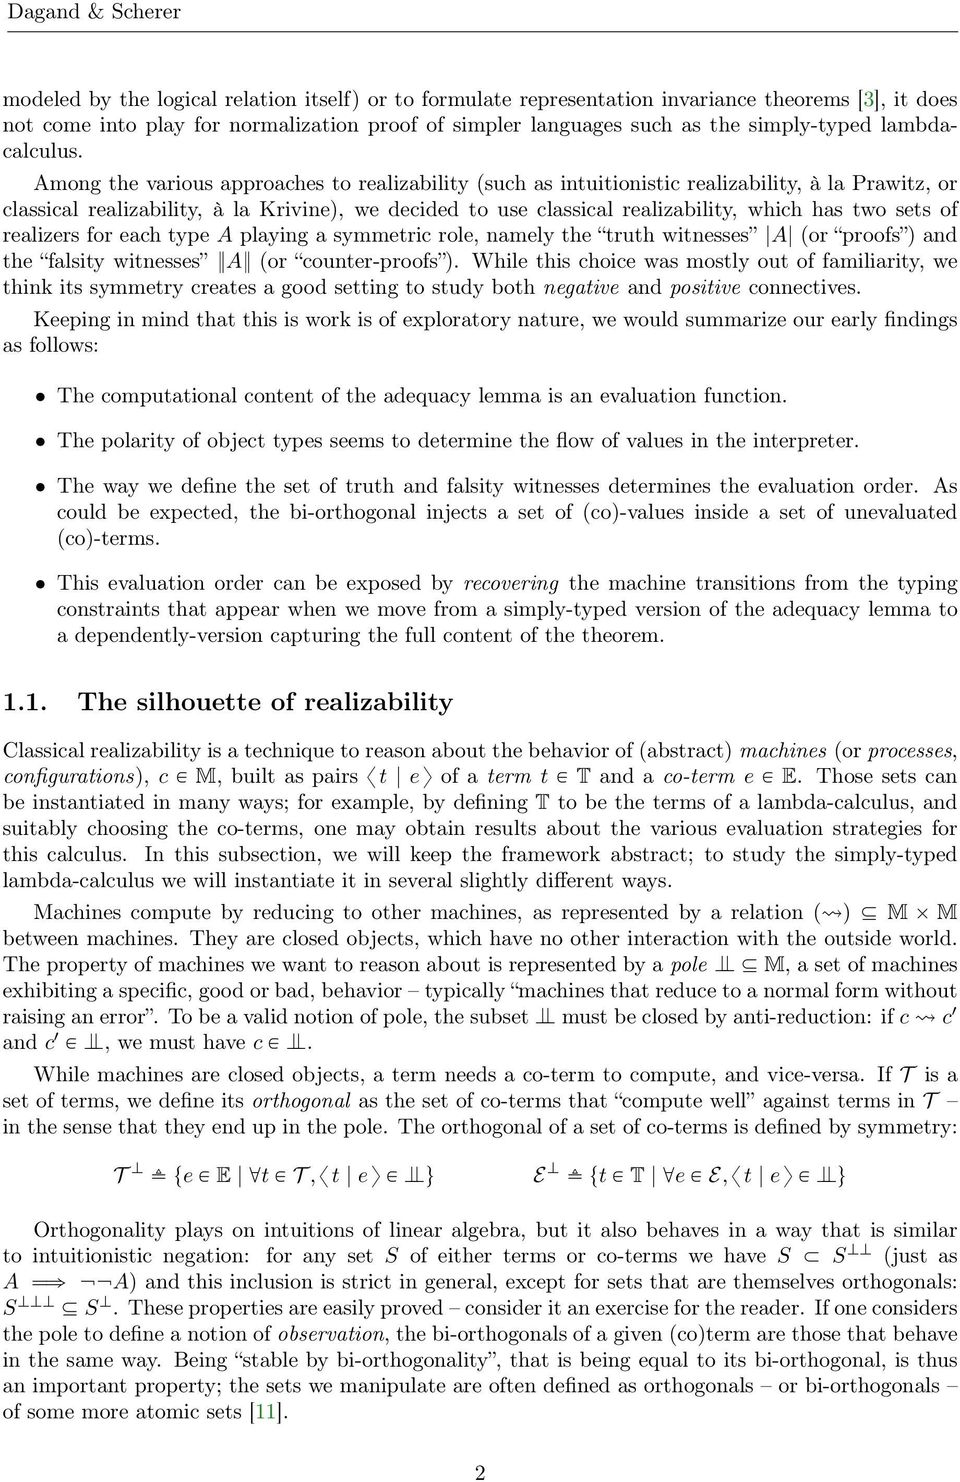 Among the various approaches to realizability (such as intuitionistic realizability, à la Prawitz, or classical realizability, à la Krivine), we decided to use classical realizability, which has two